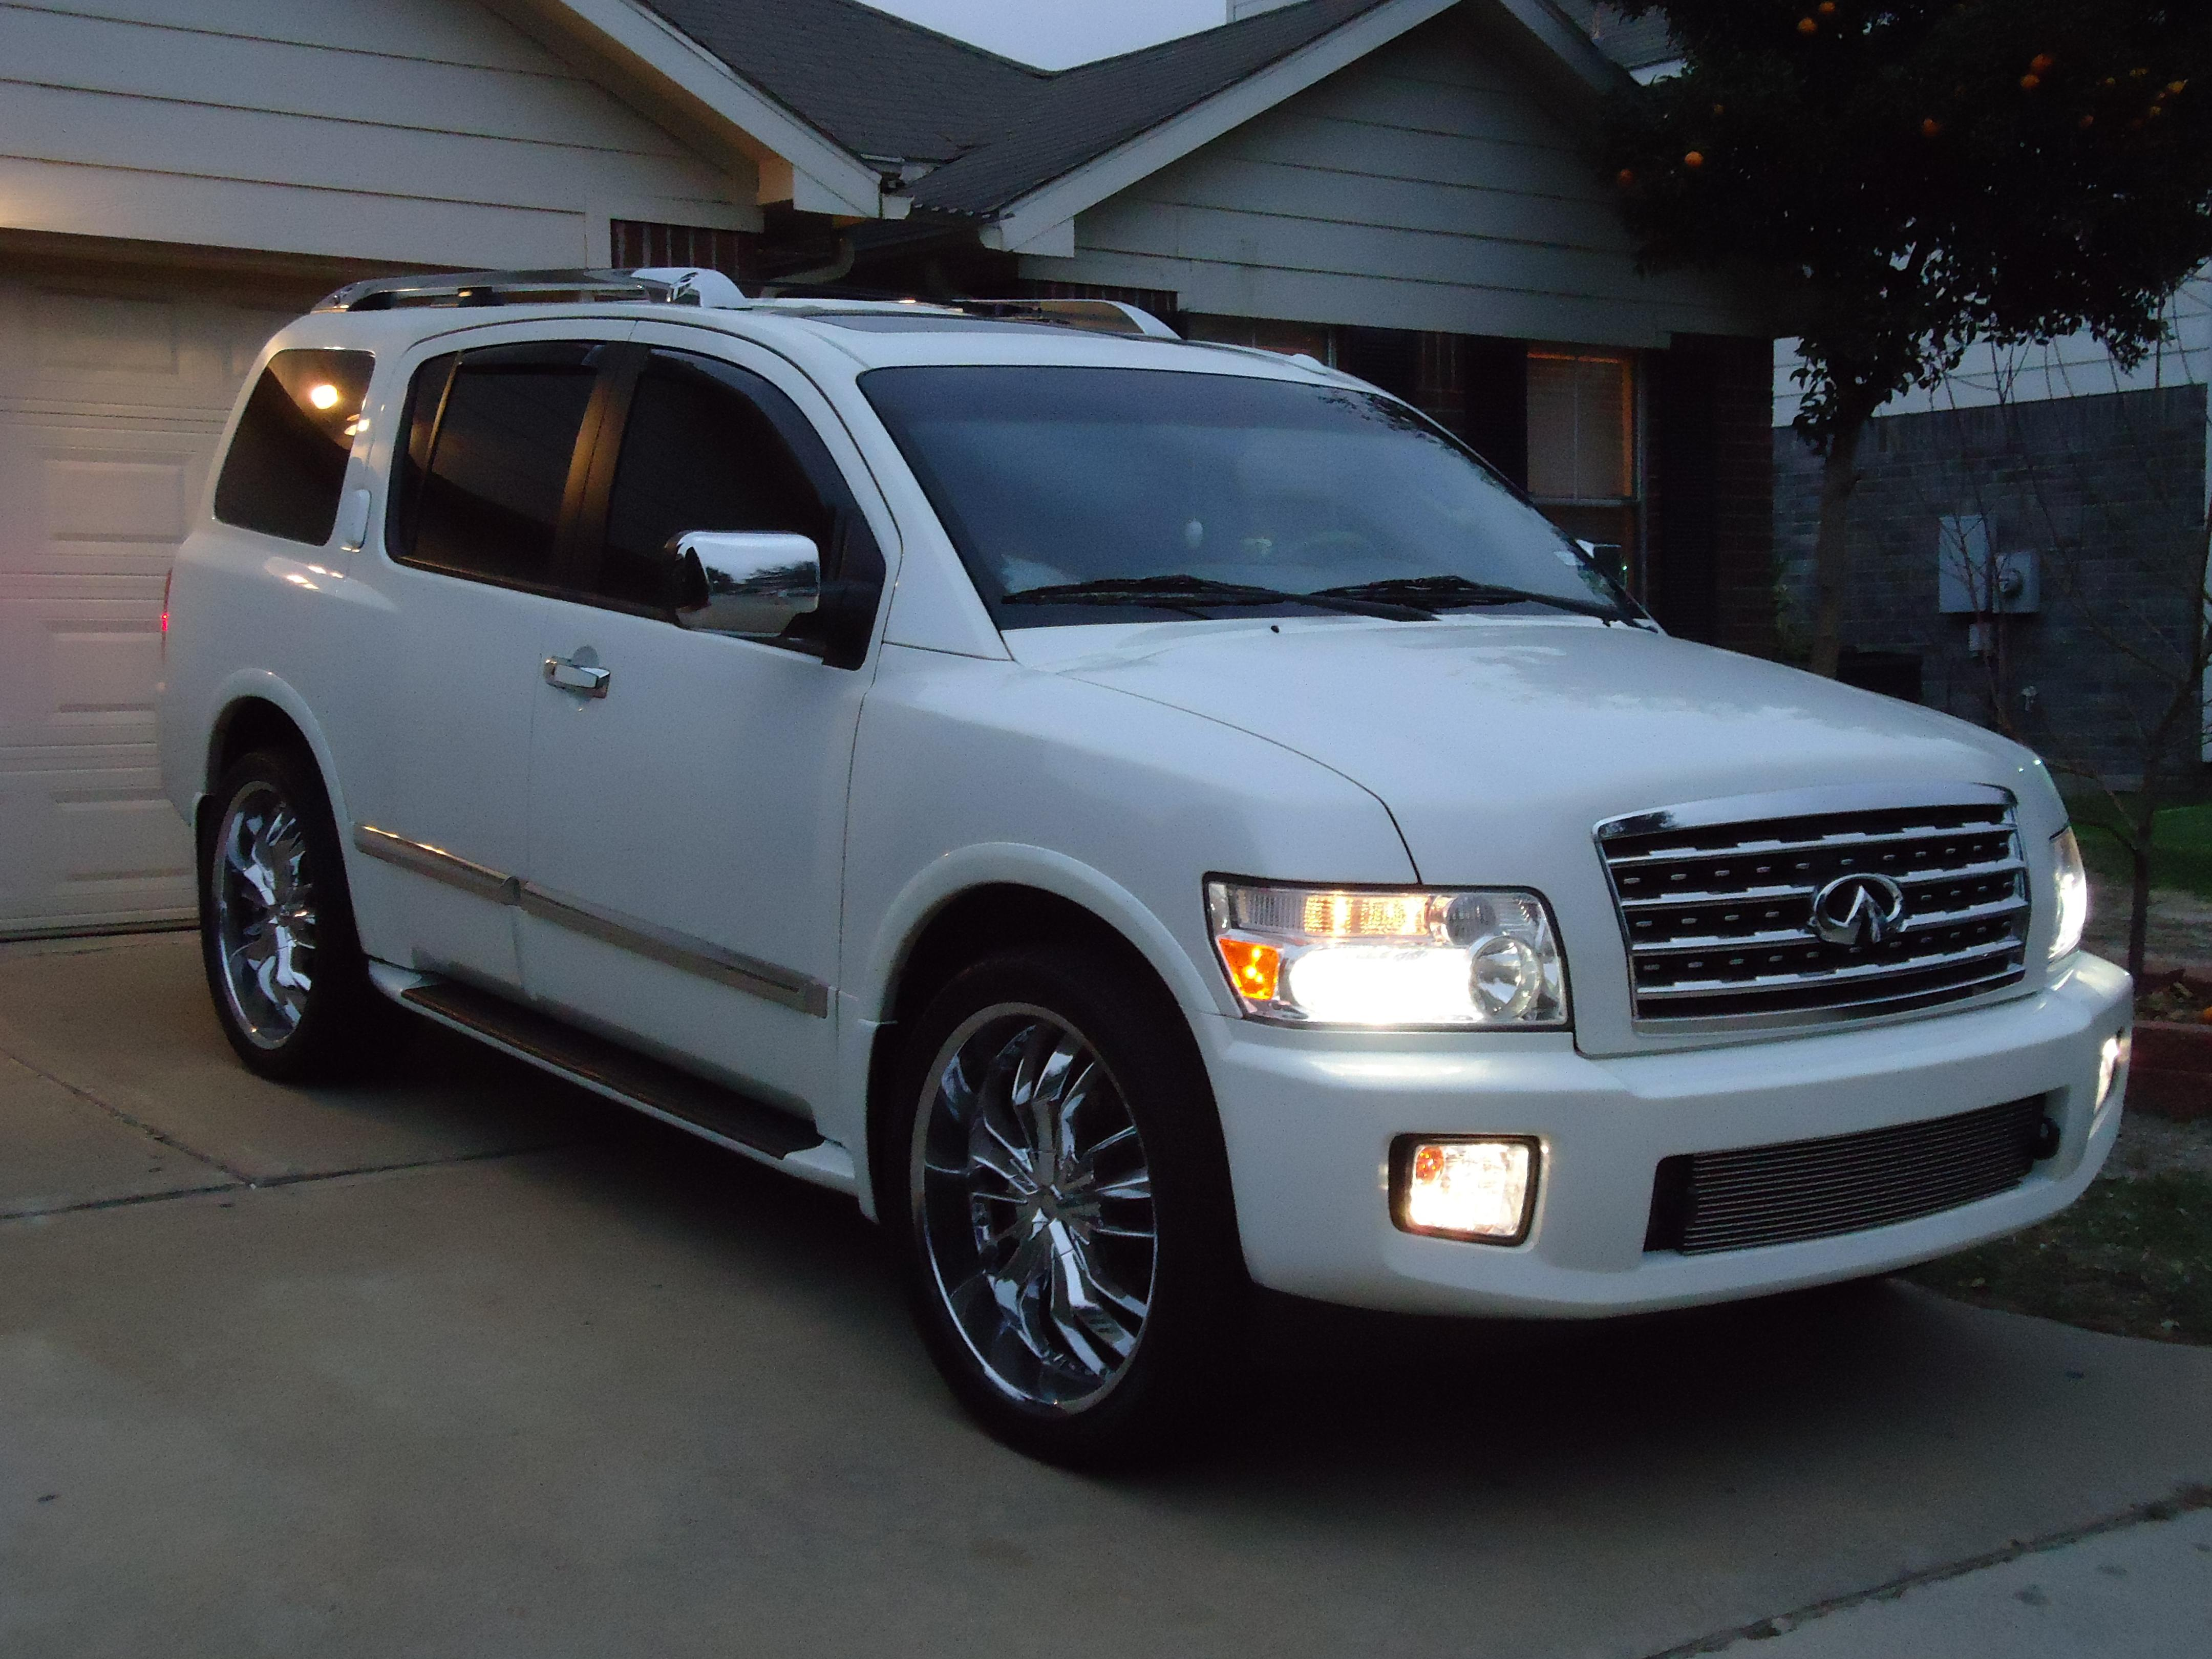 2008 infiniti qx56 suv pictures to pin pinsdaddy 2008